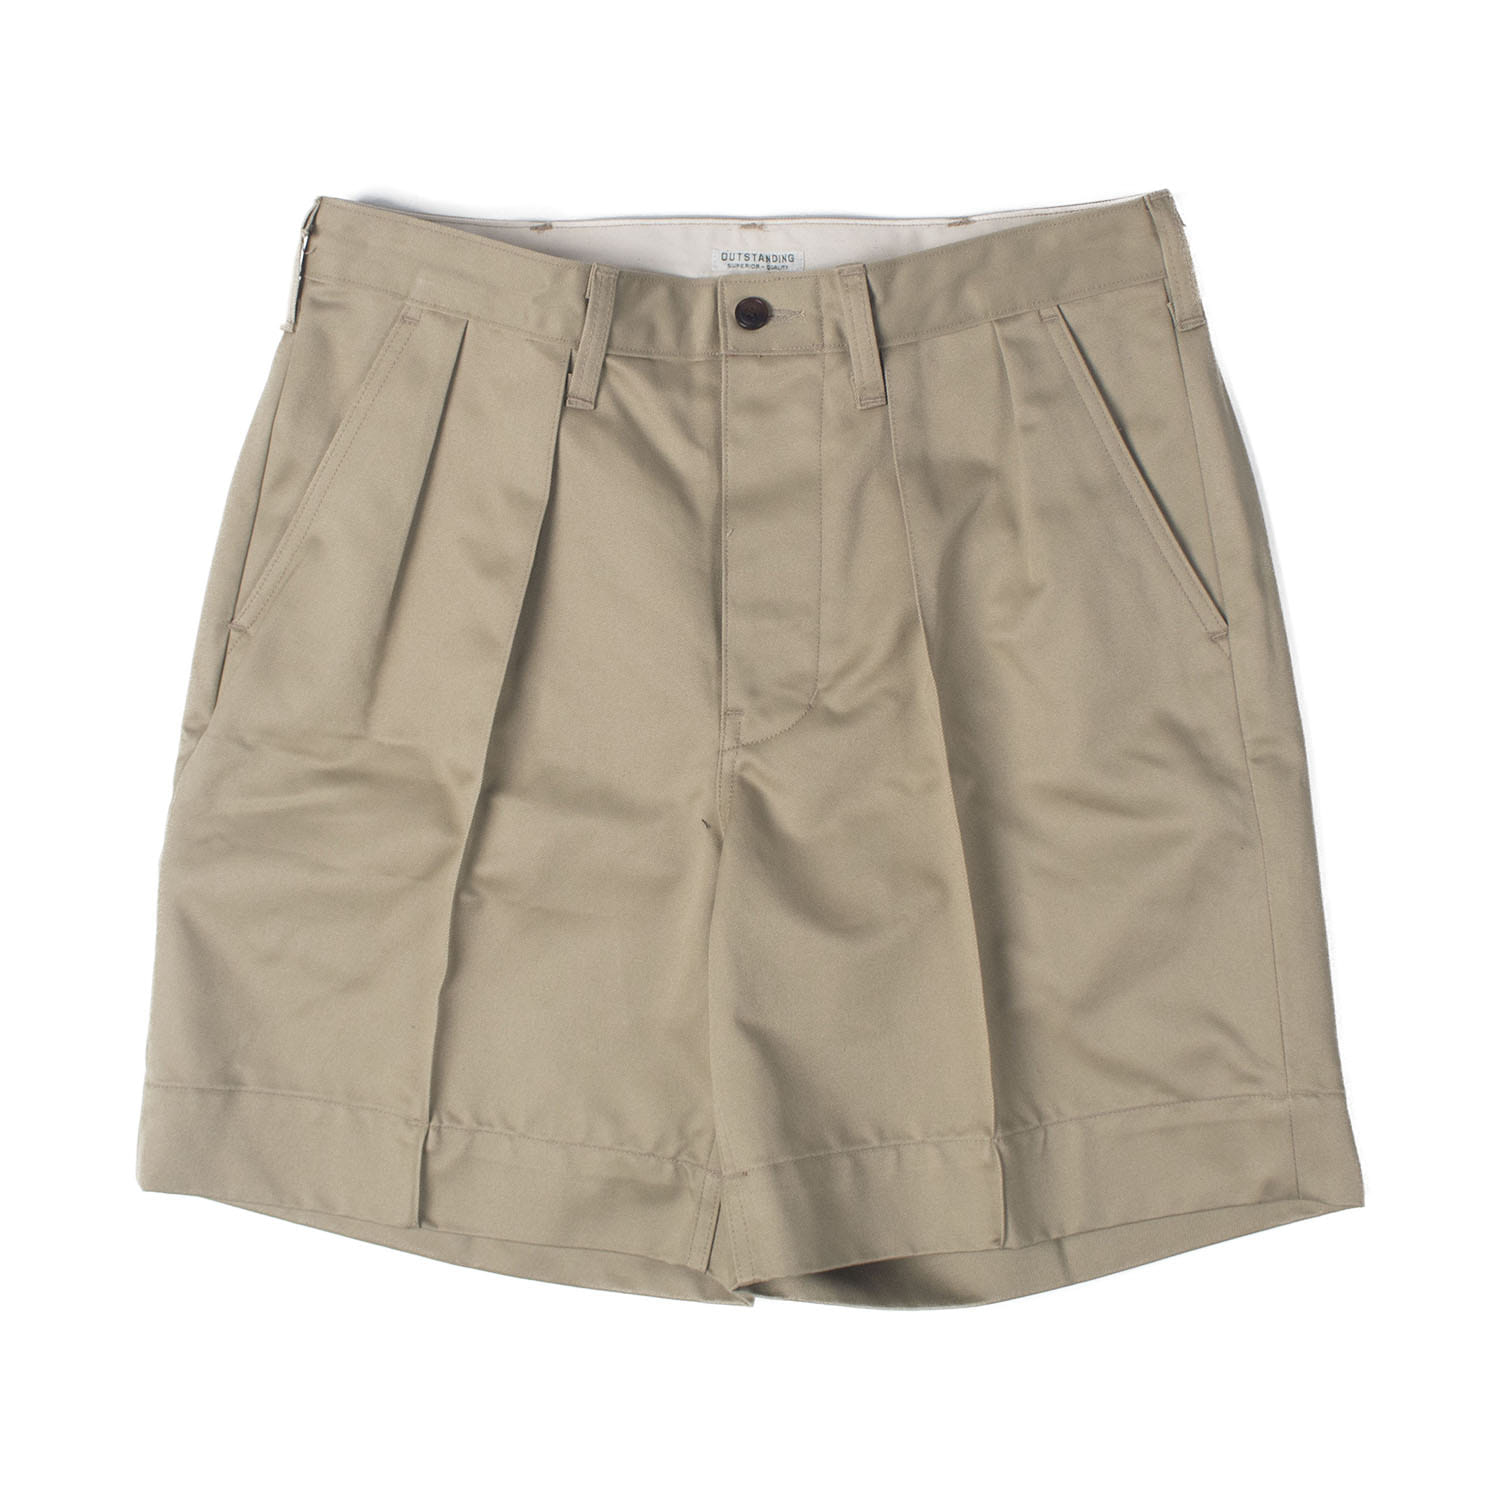 Officer Military Chino Shorts (Beige)